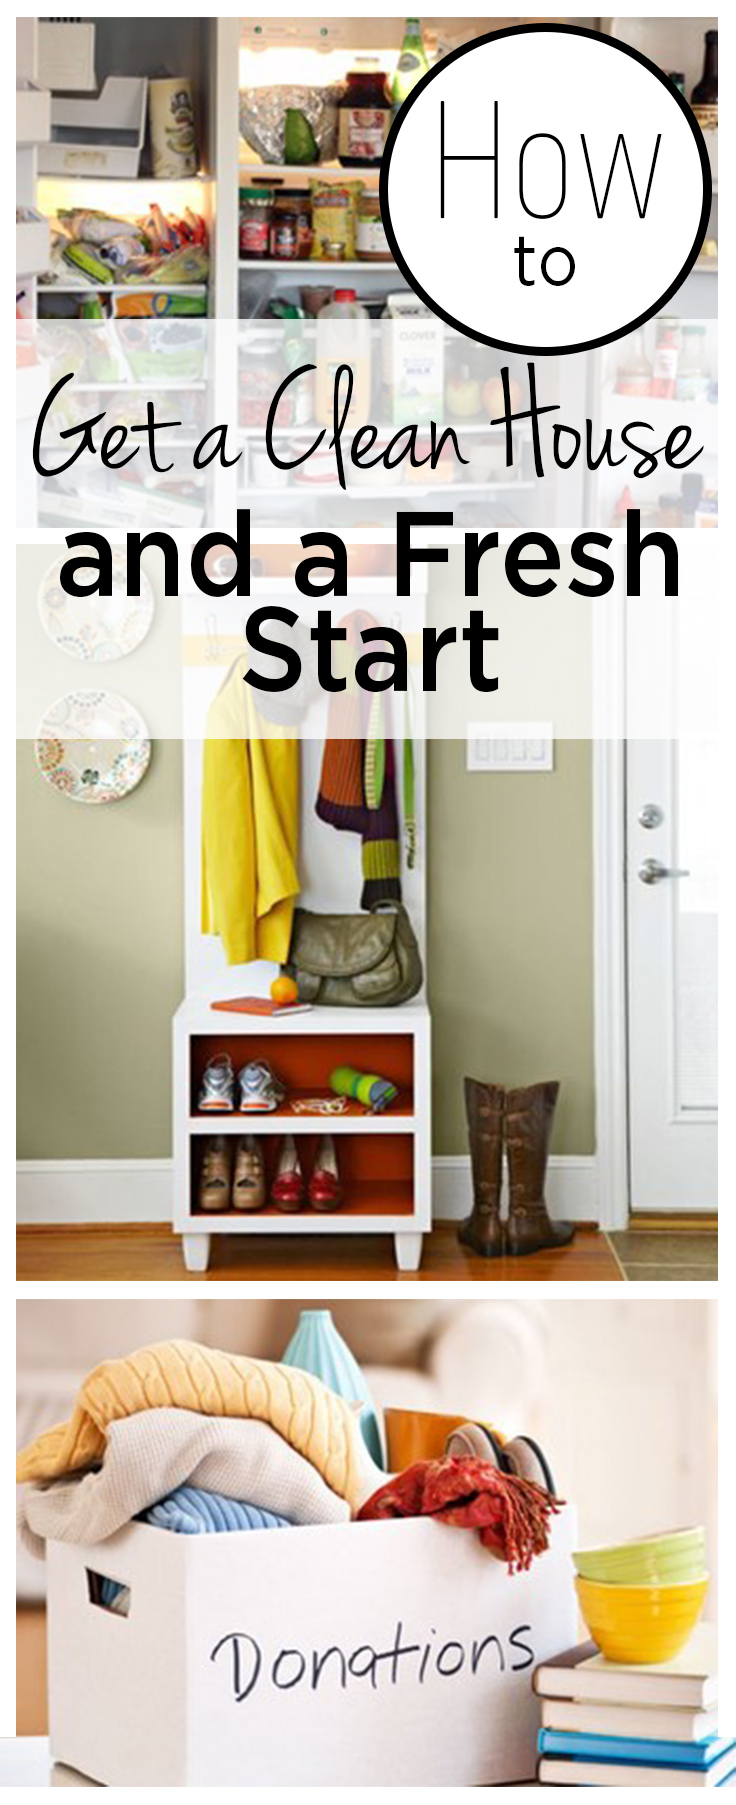 how to get a clean house and a fresh start page 4 of 10